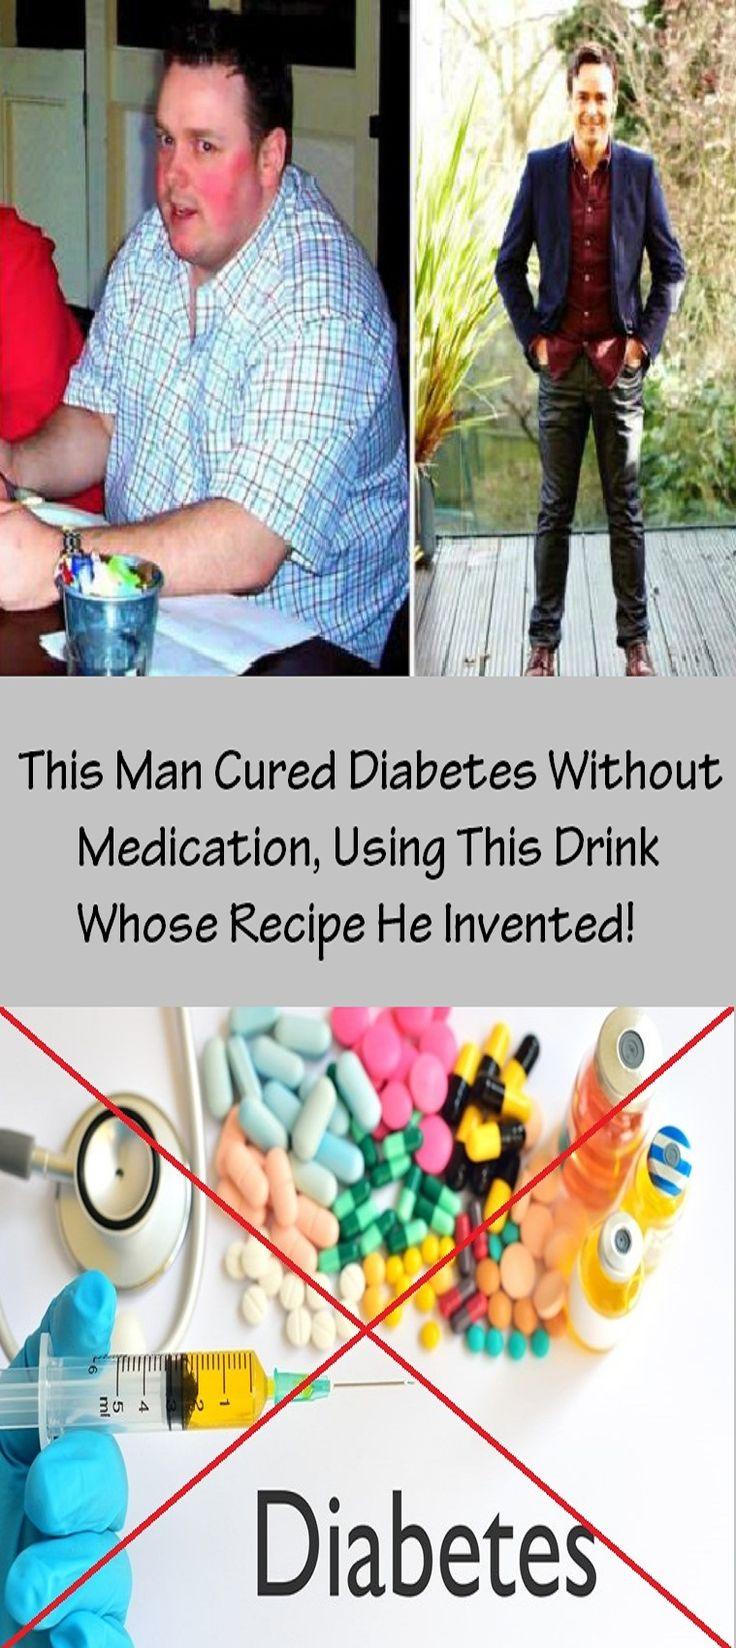 This Man Cured Diabetes Without Medication, Using This Drink Whose Recipe He Invented!